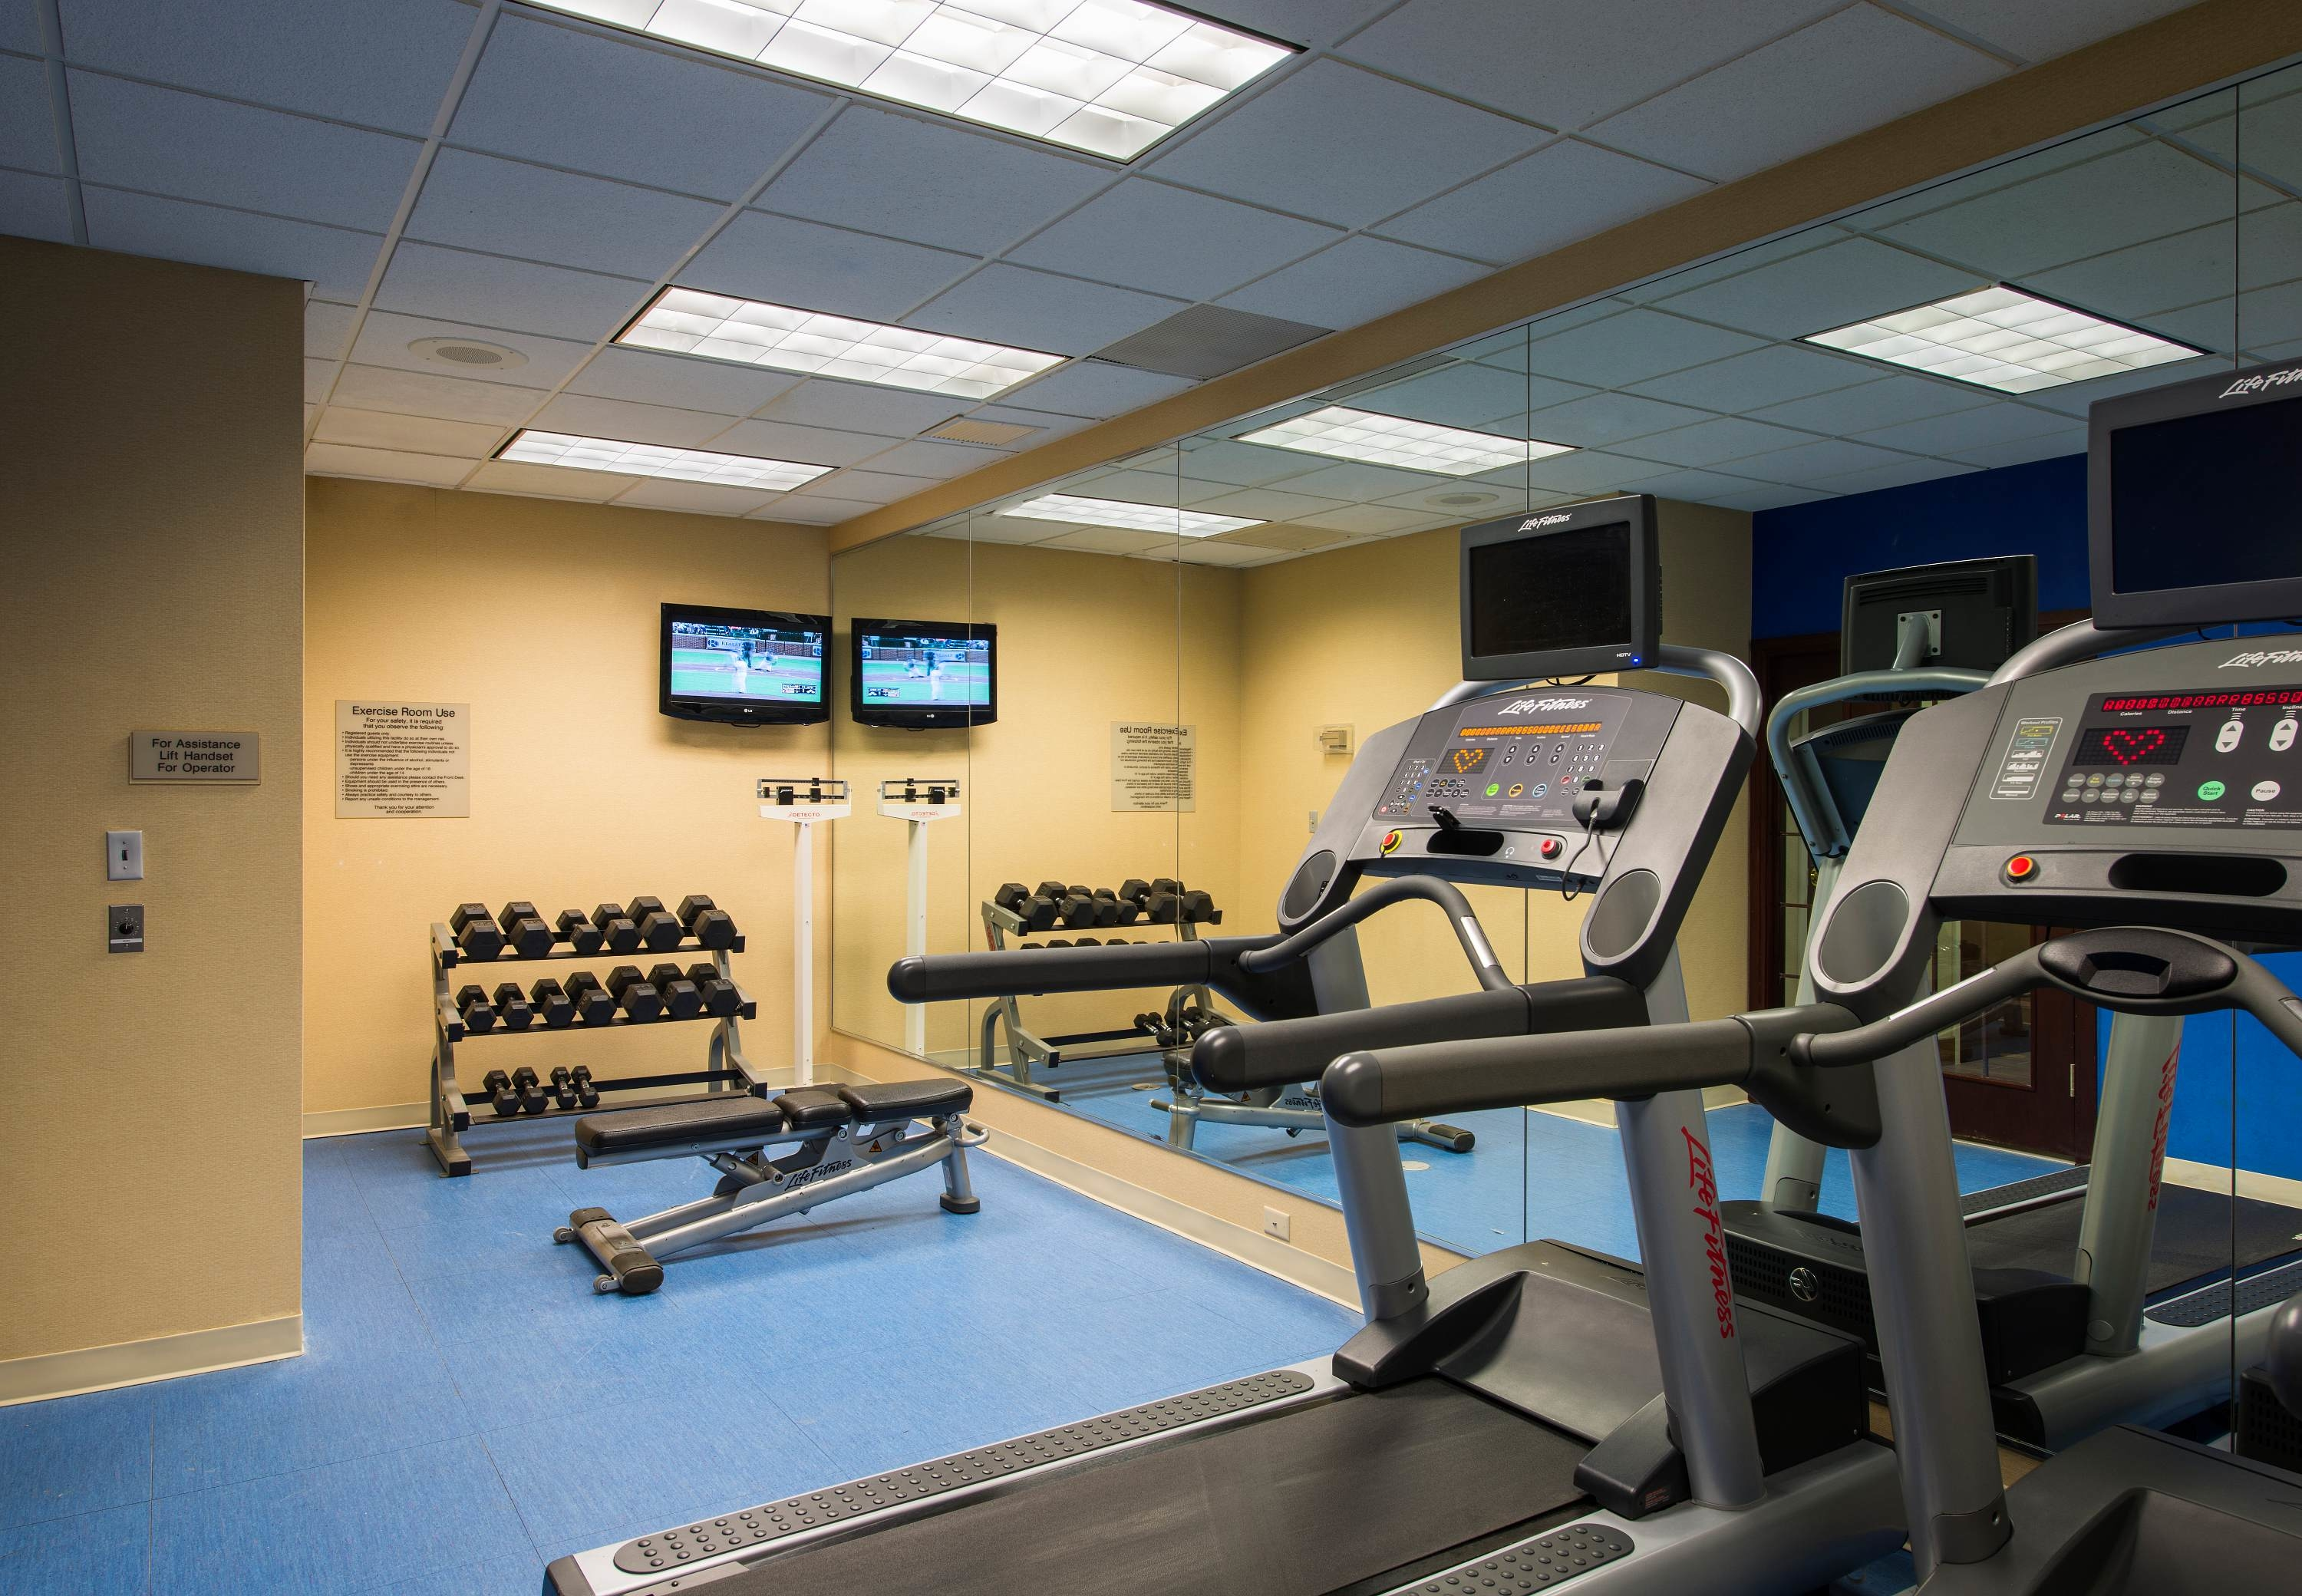 SpringHill Suites by Marriott Williamsburg image 2